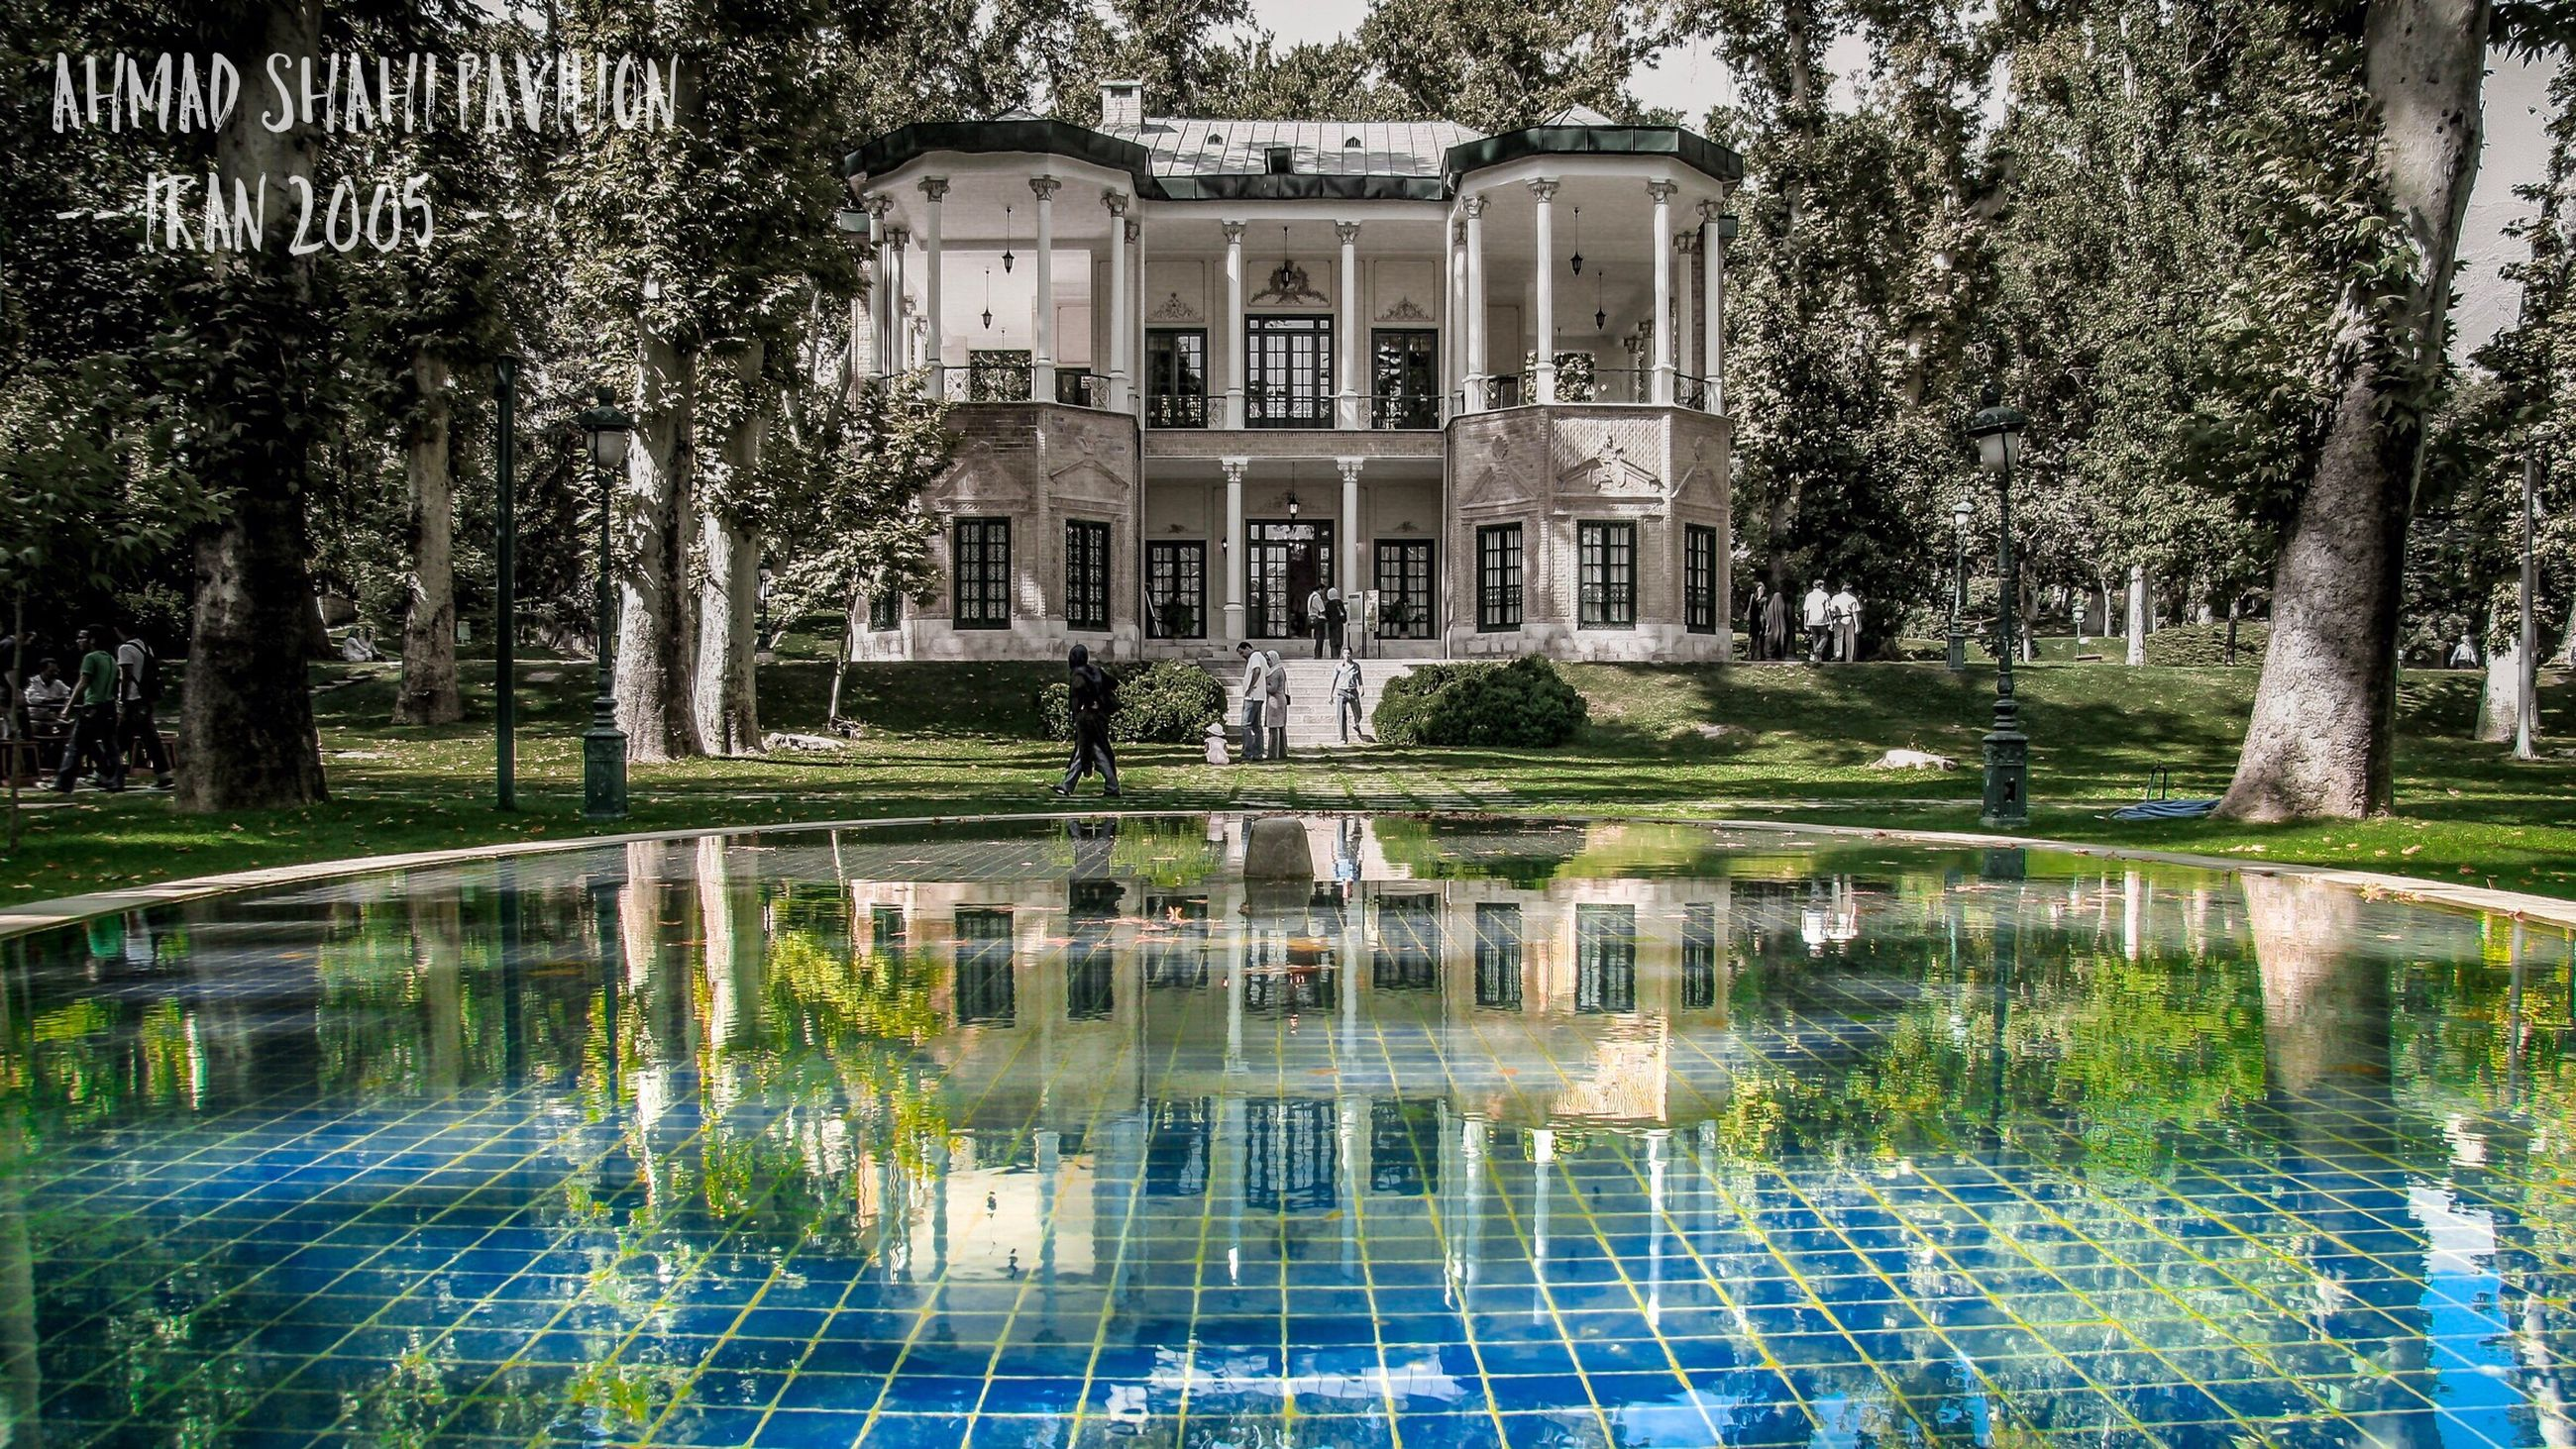 architecture, built structure, building exterior, water, reflection, house, waterfront, tree, residential building, outdoors, tranquility, day, tranquil scene, scenics, no people, architectural column, facade, green color, standing water